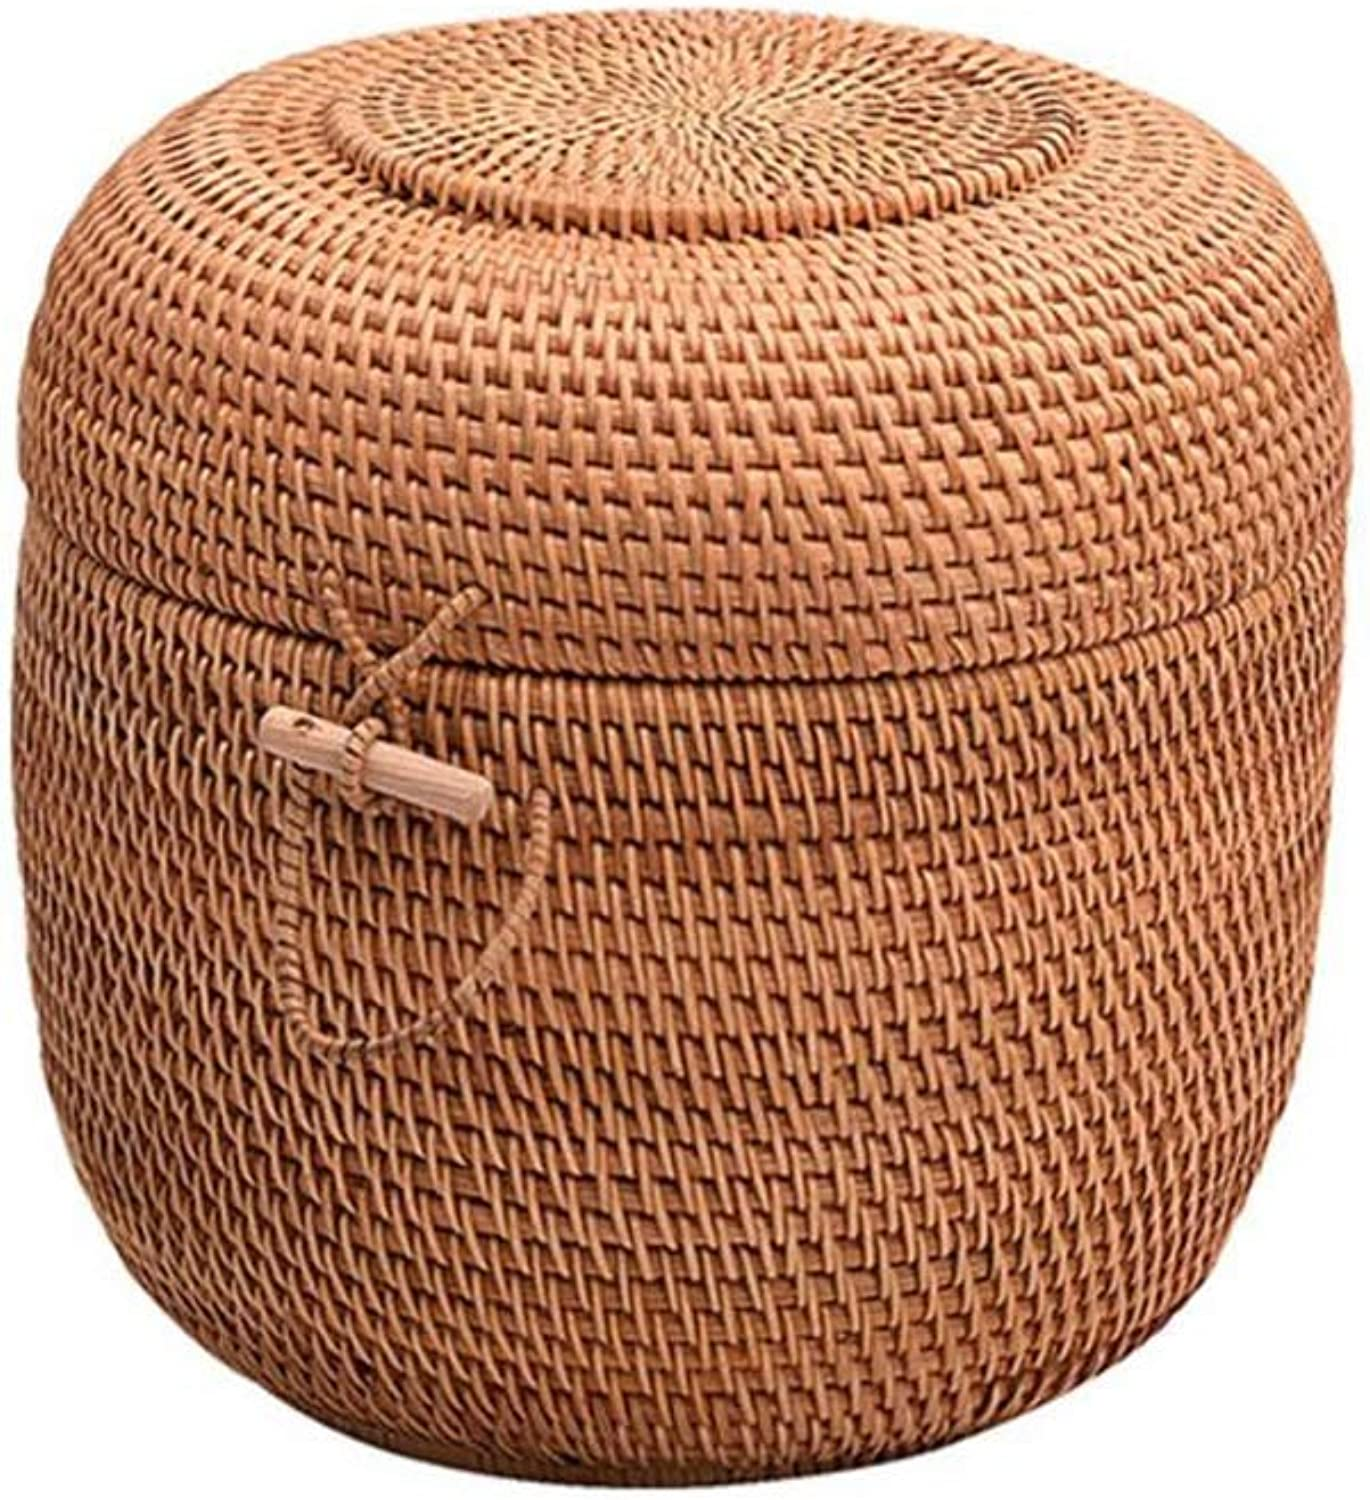 MUMA Storage Box Handmade Rattan Woven with Lid Kitchen Desktop Container (color   T1, Size   22x23cm)